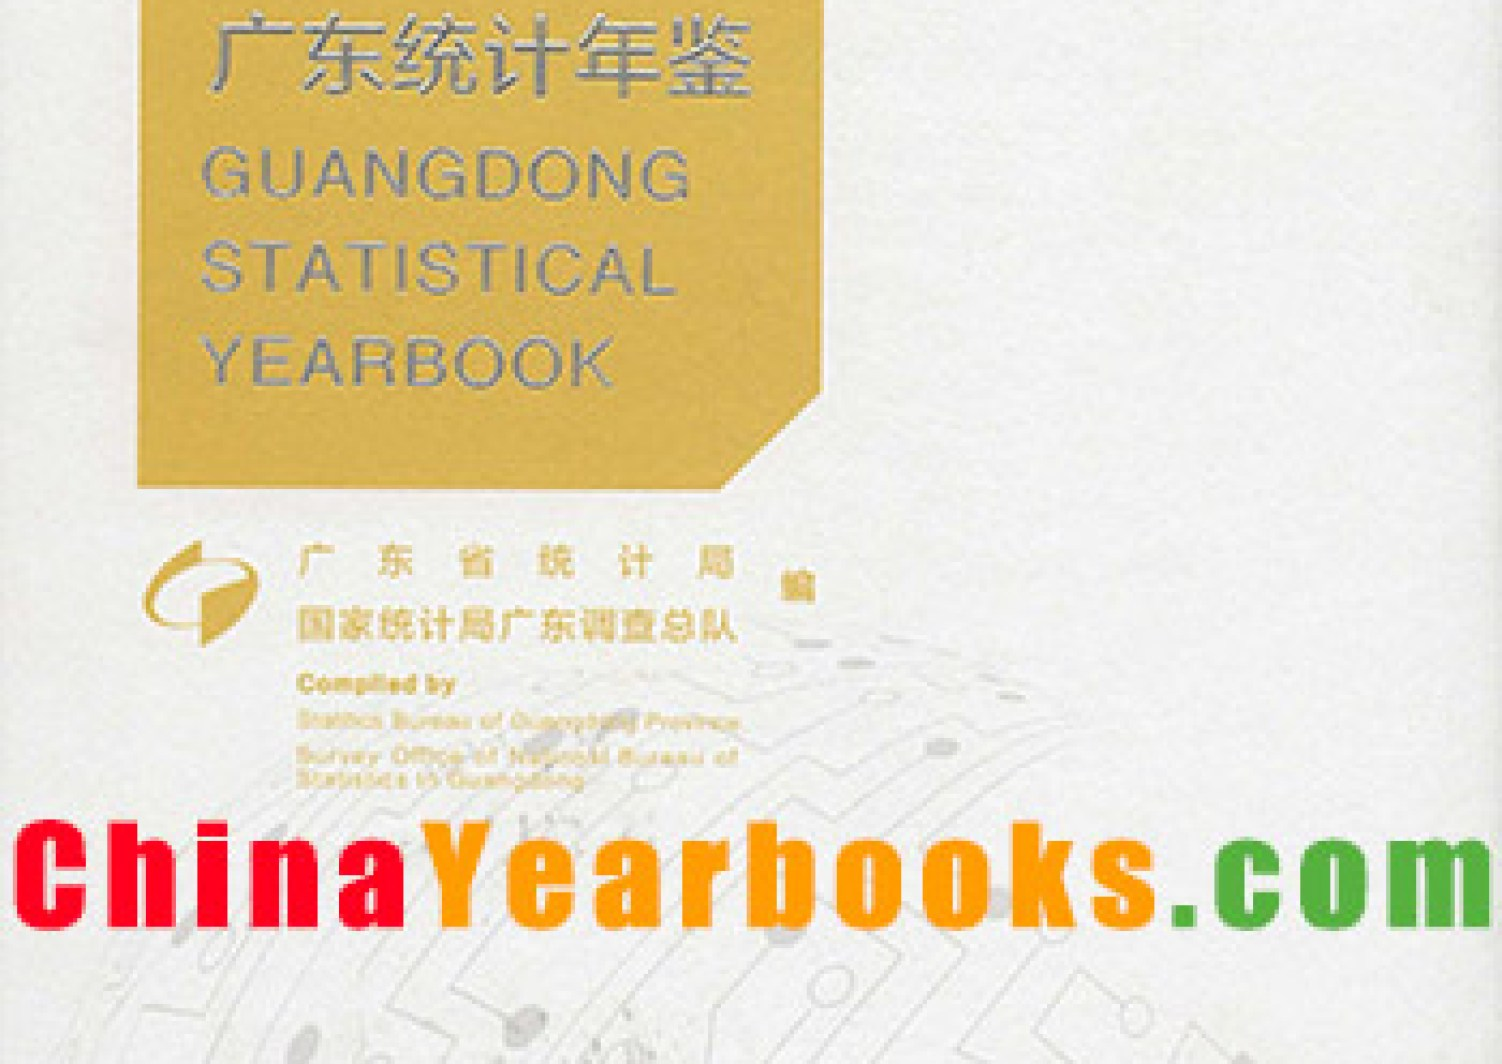 Guangdong Statistical Yearbook China Yearbooks